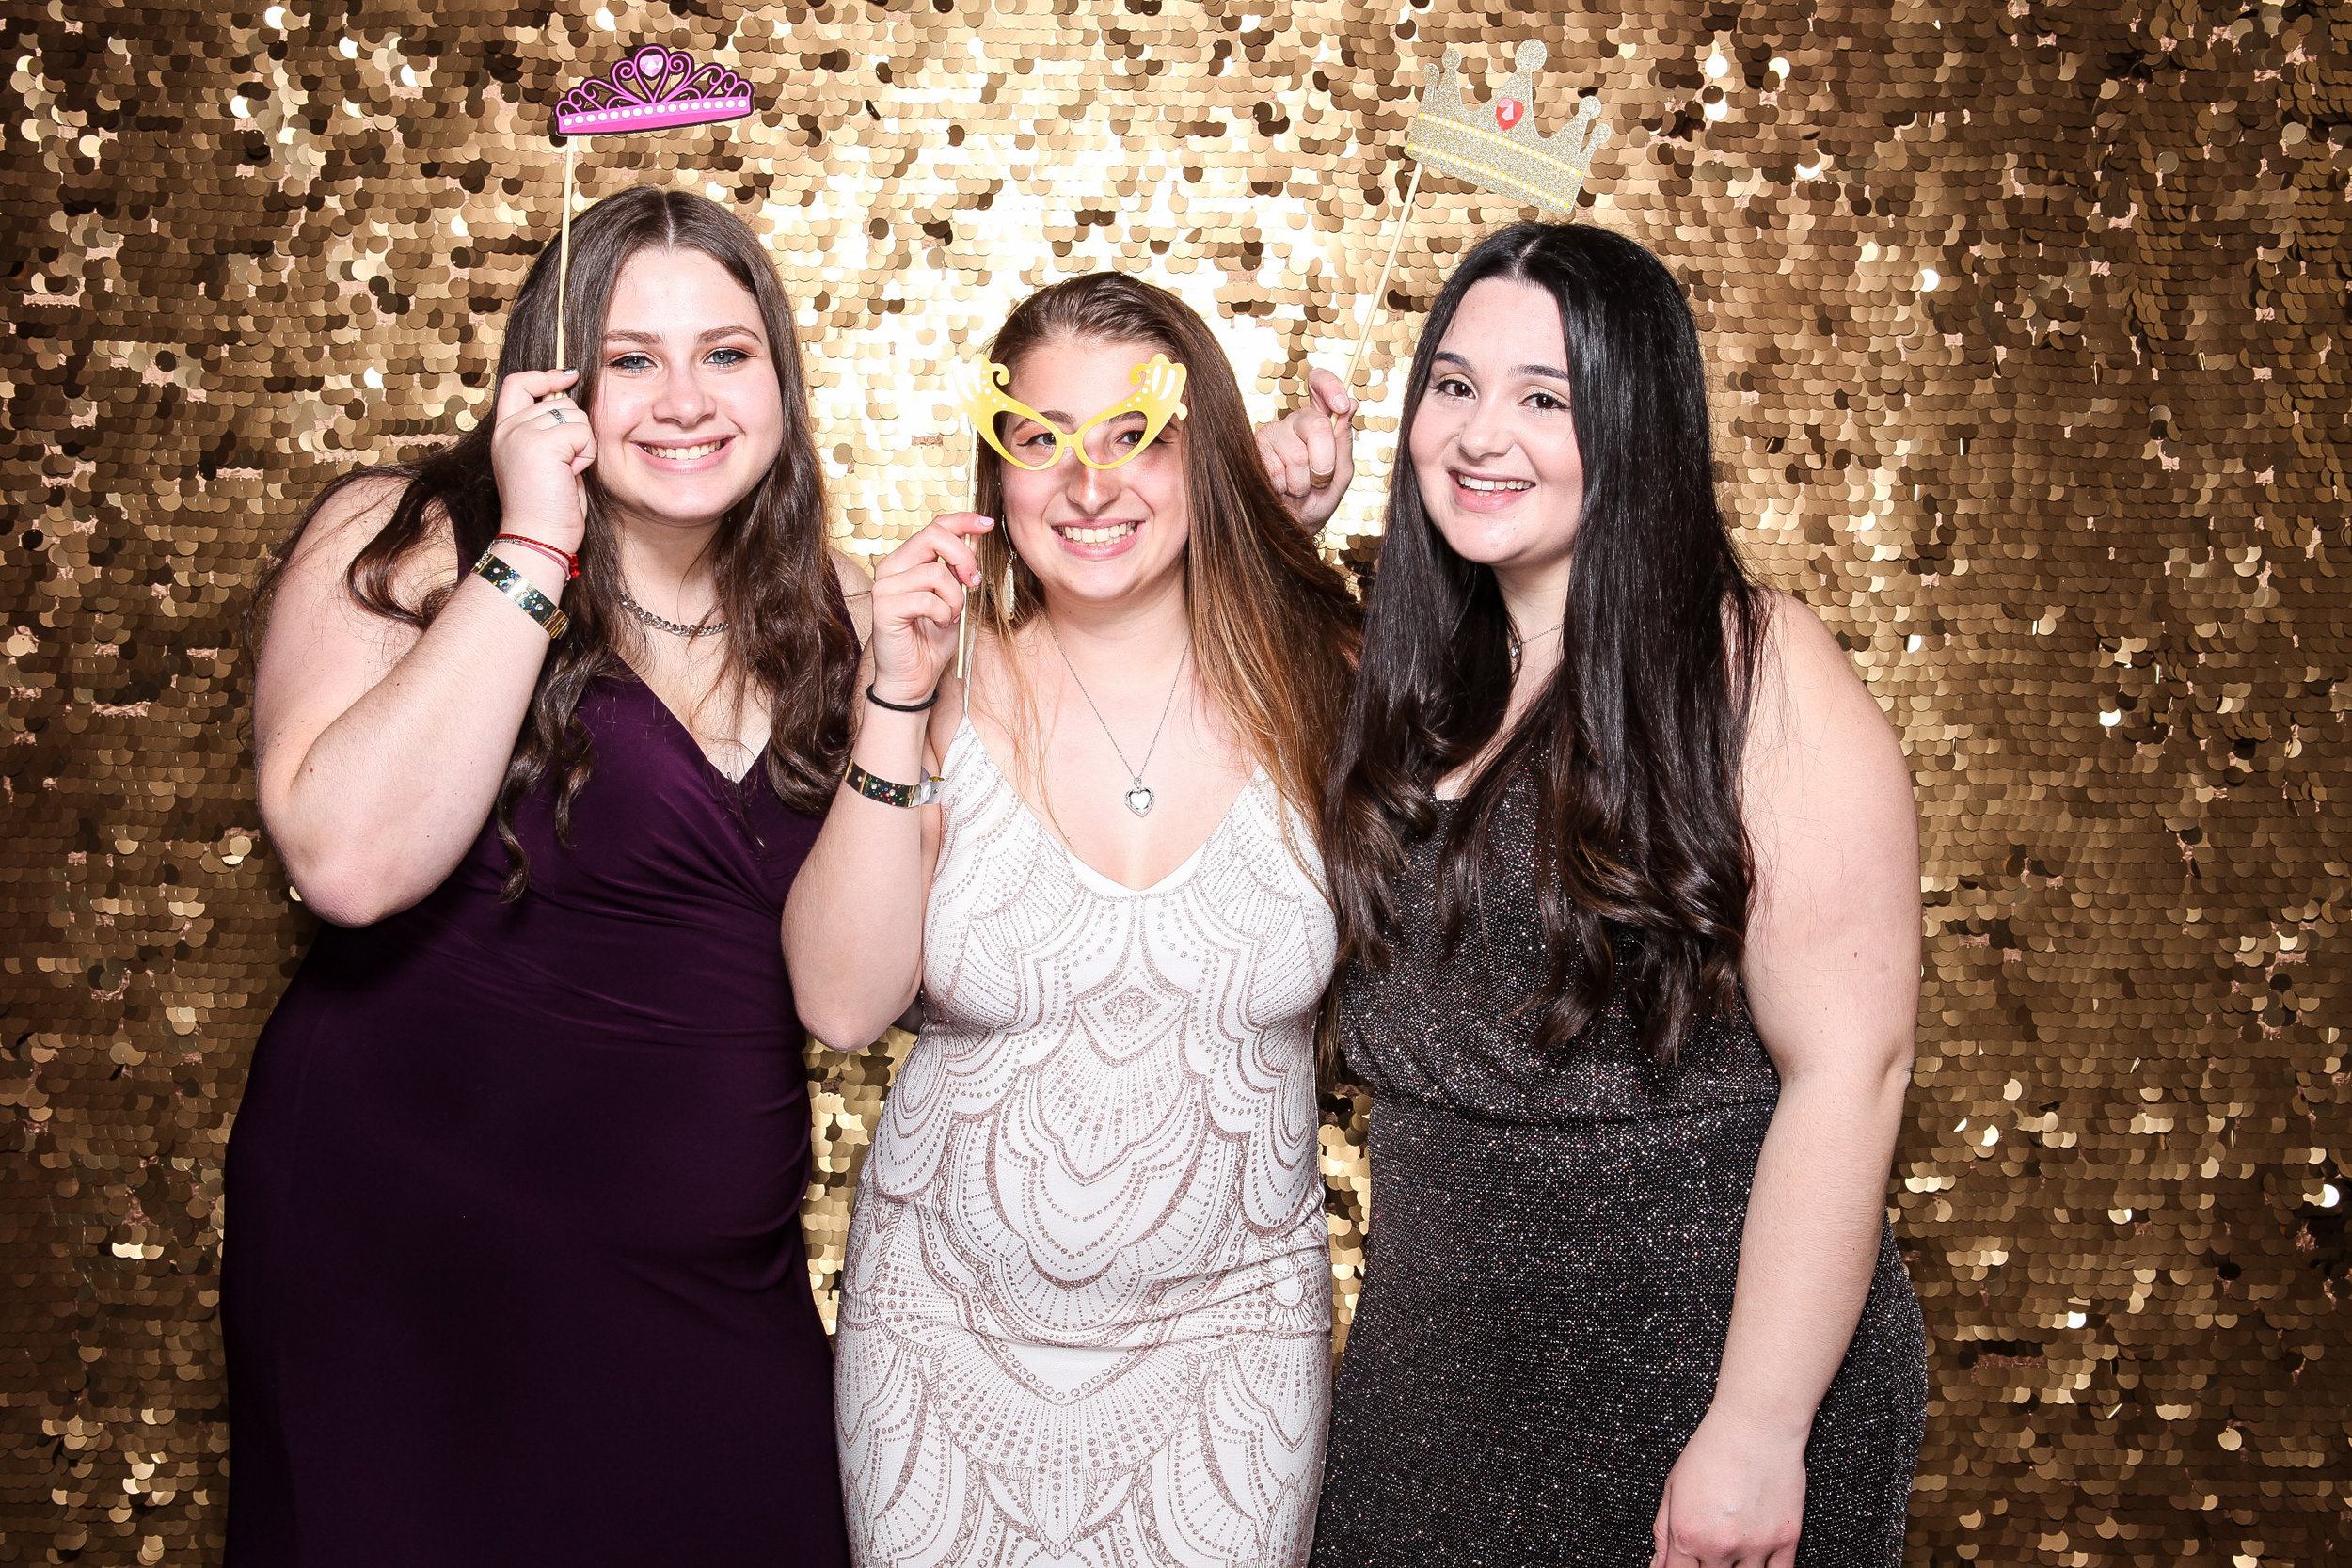 20190503_Adelphi_Senior_Formal-026.jpg